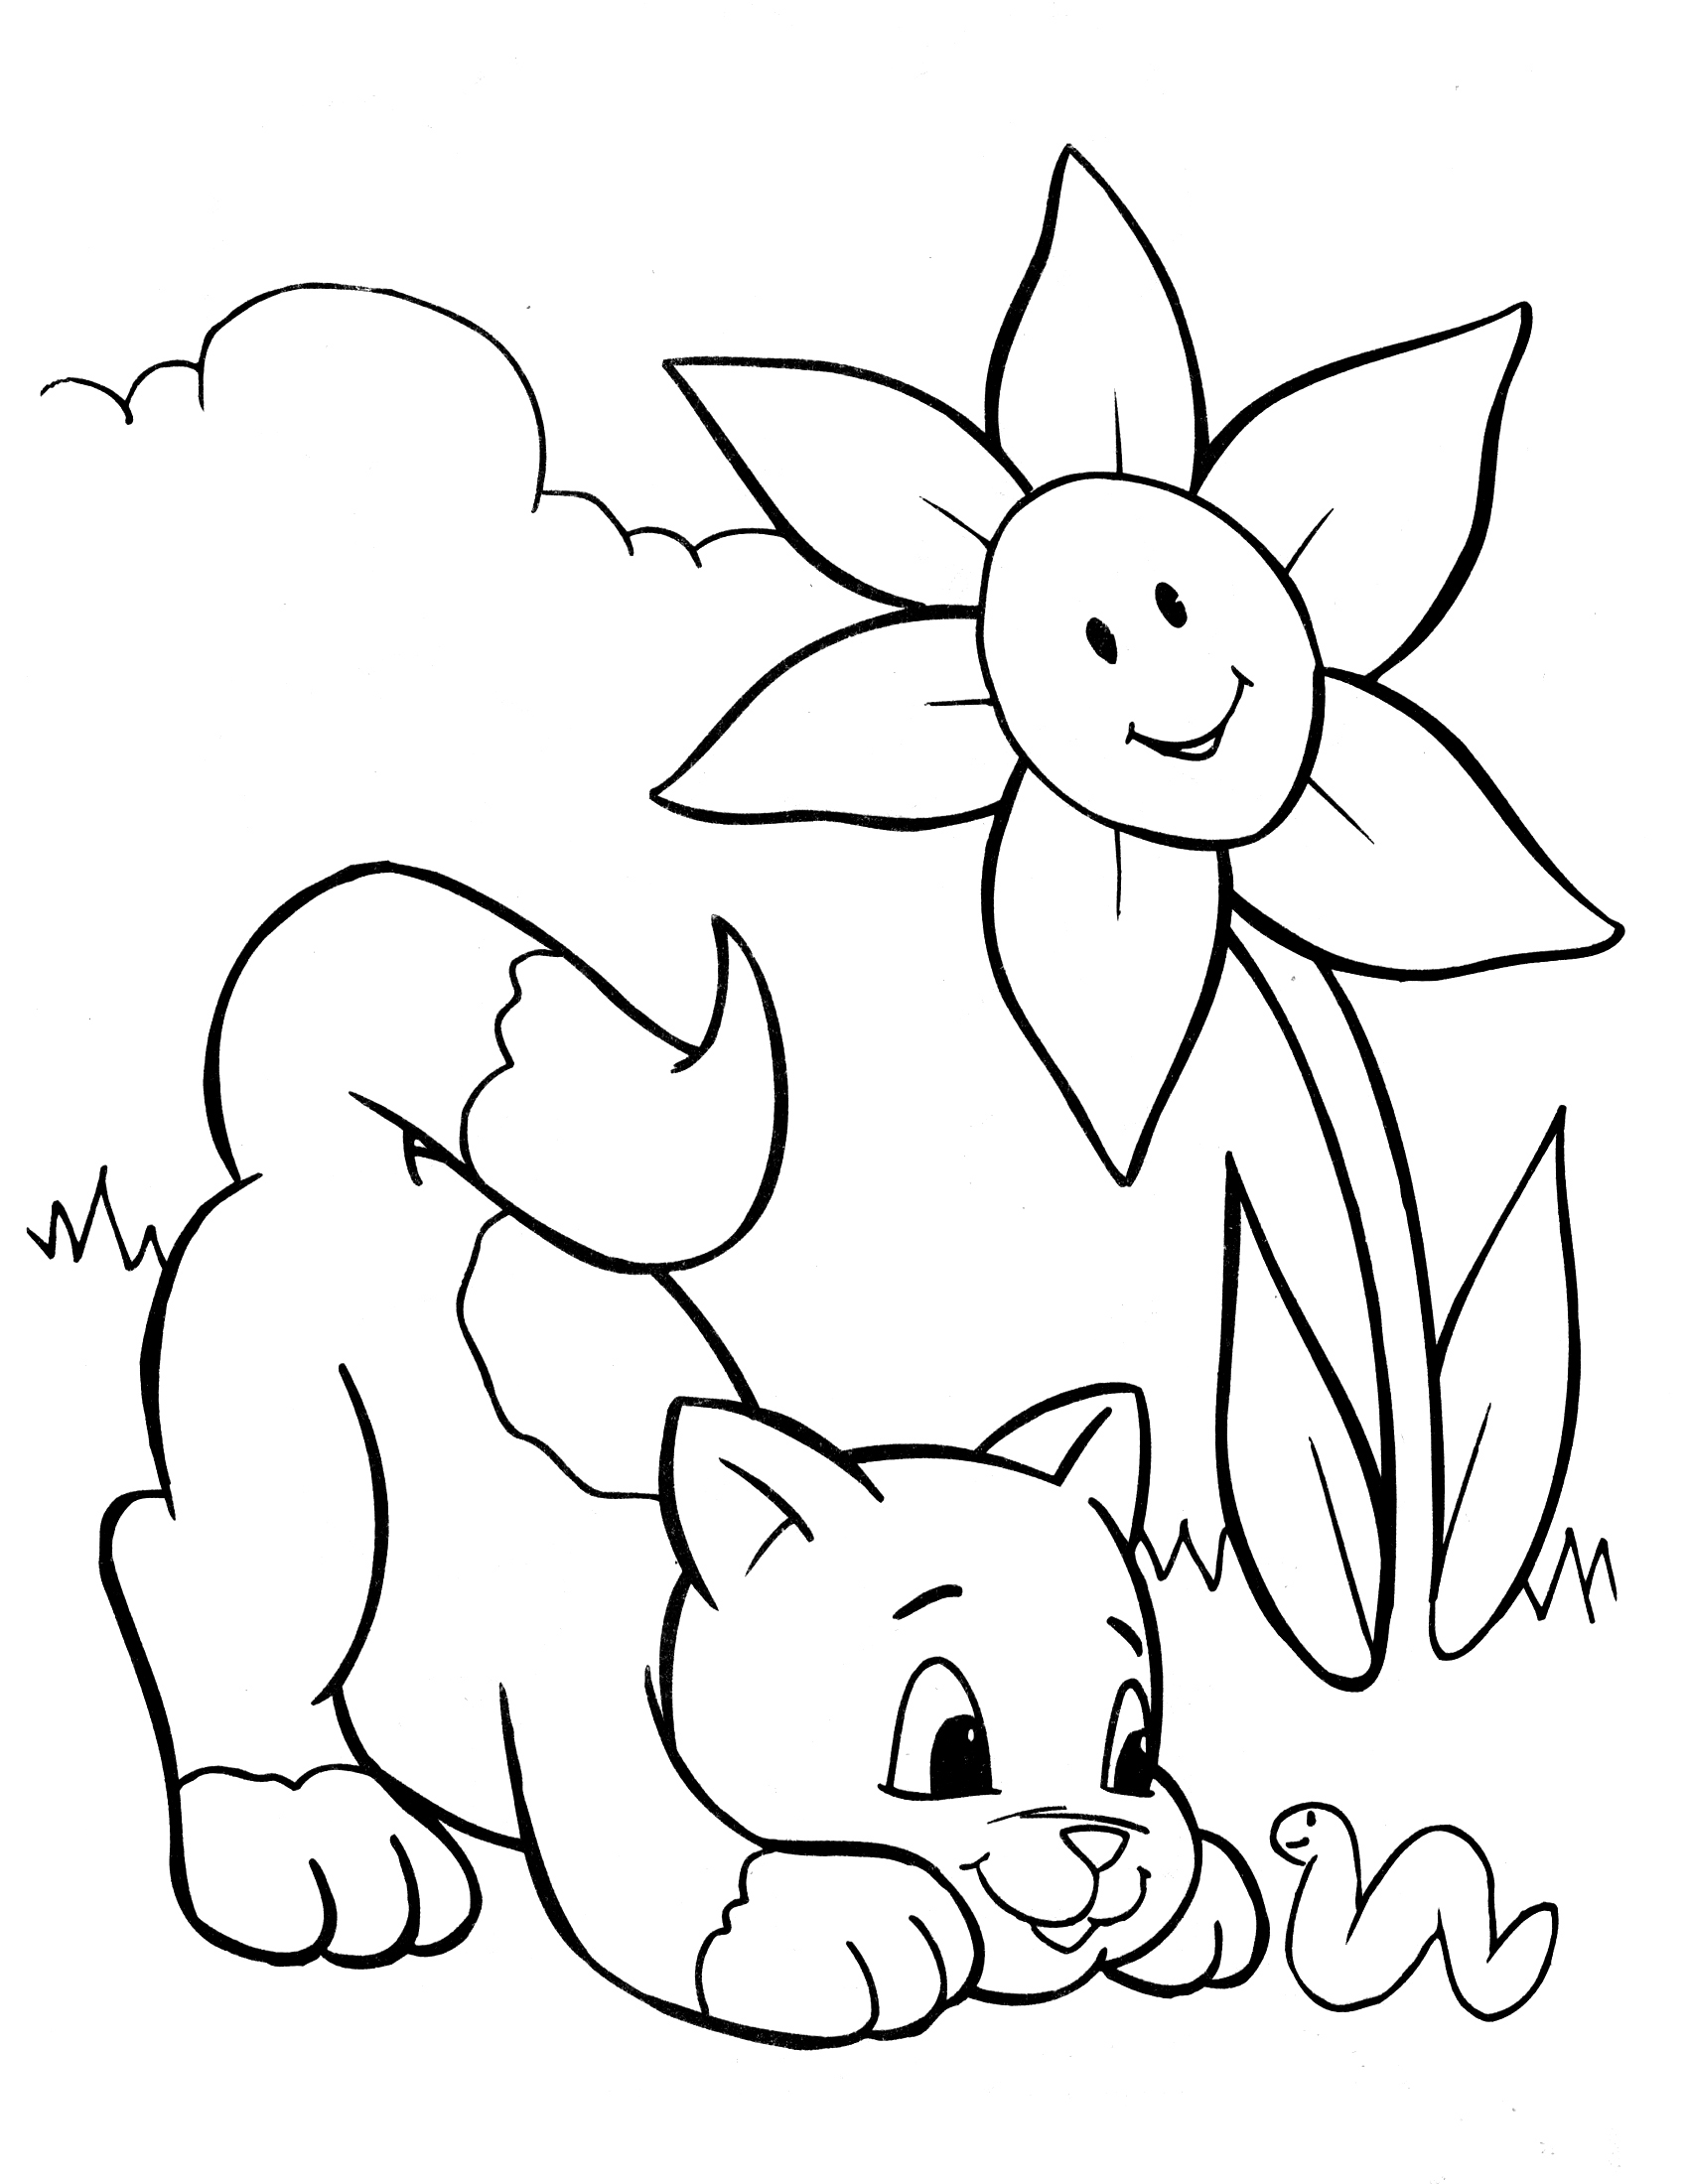 Marvelous 1700x2200 Crayola Printables Crayola Coloring Page 12 Camping And